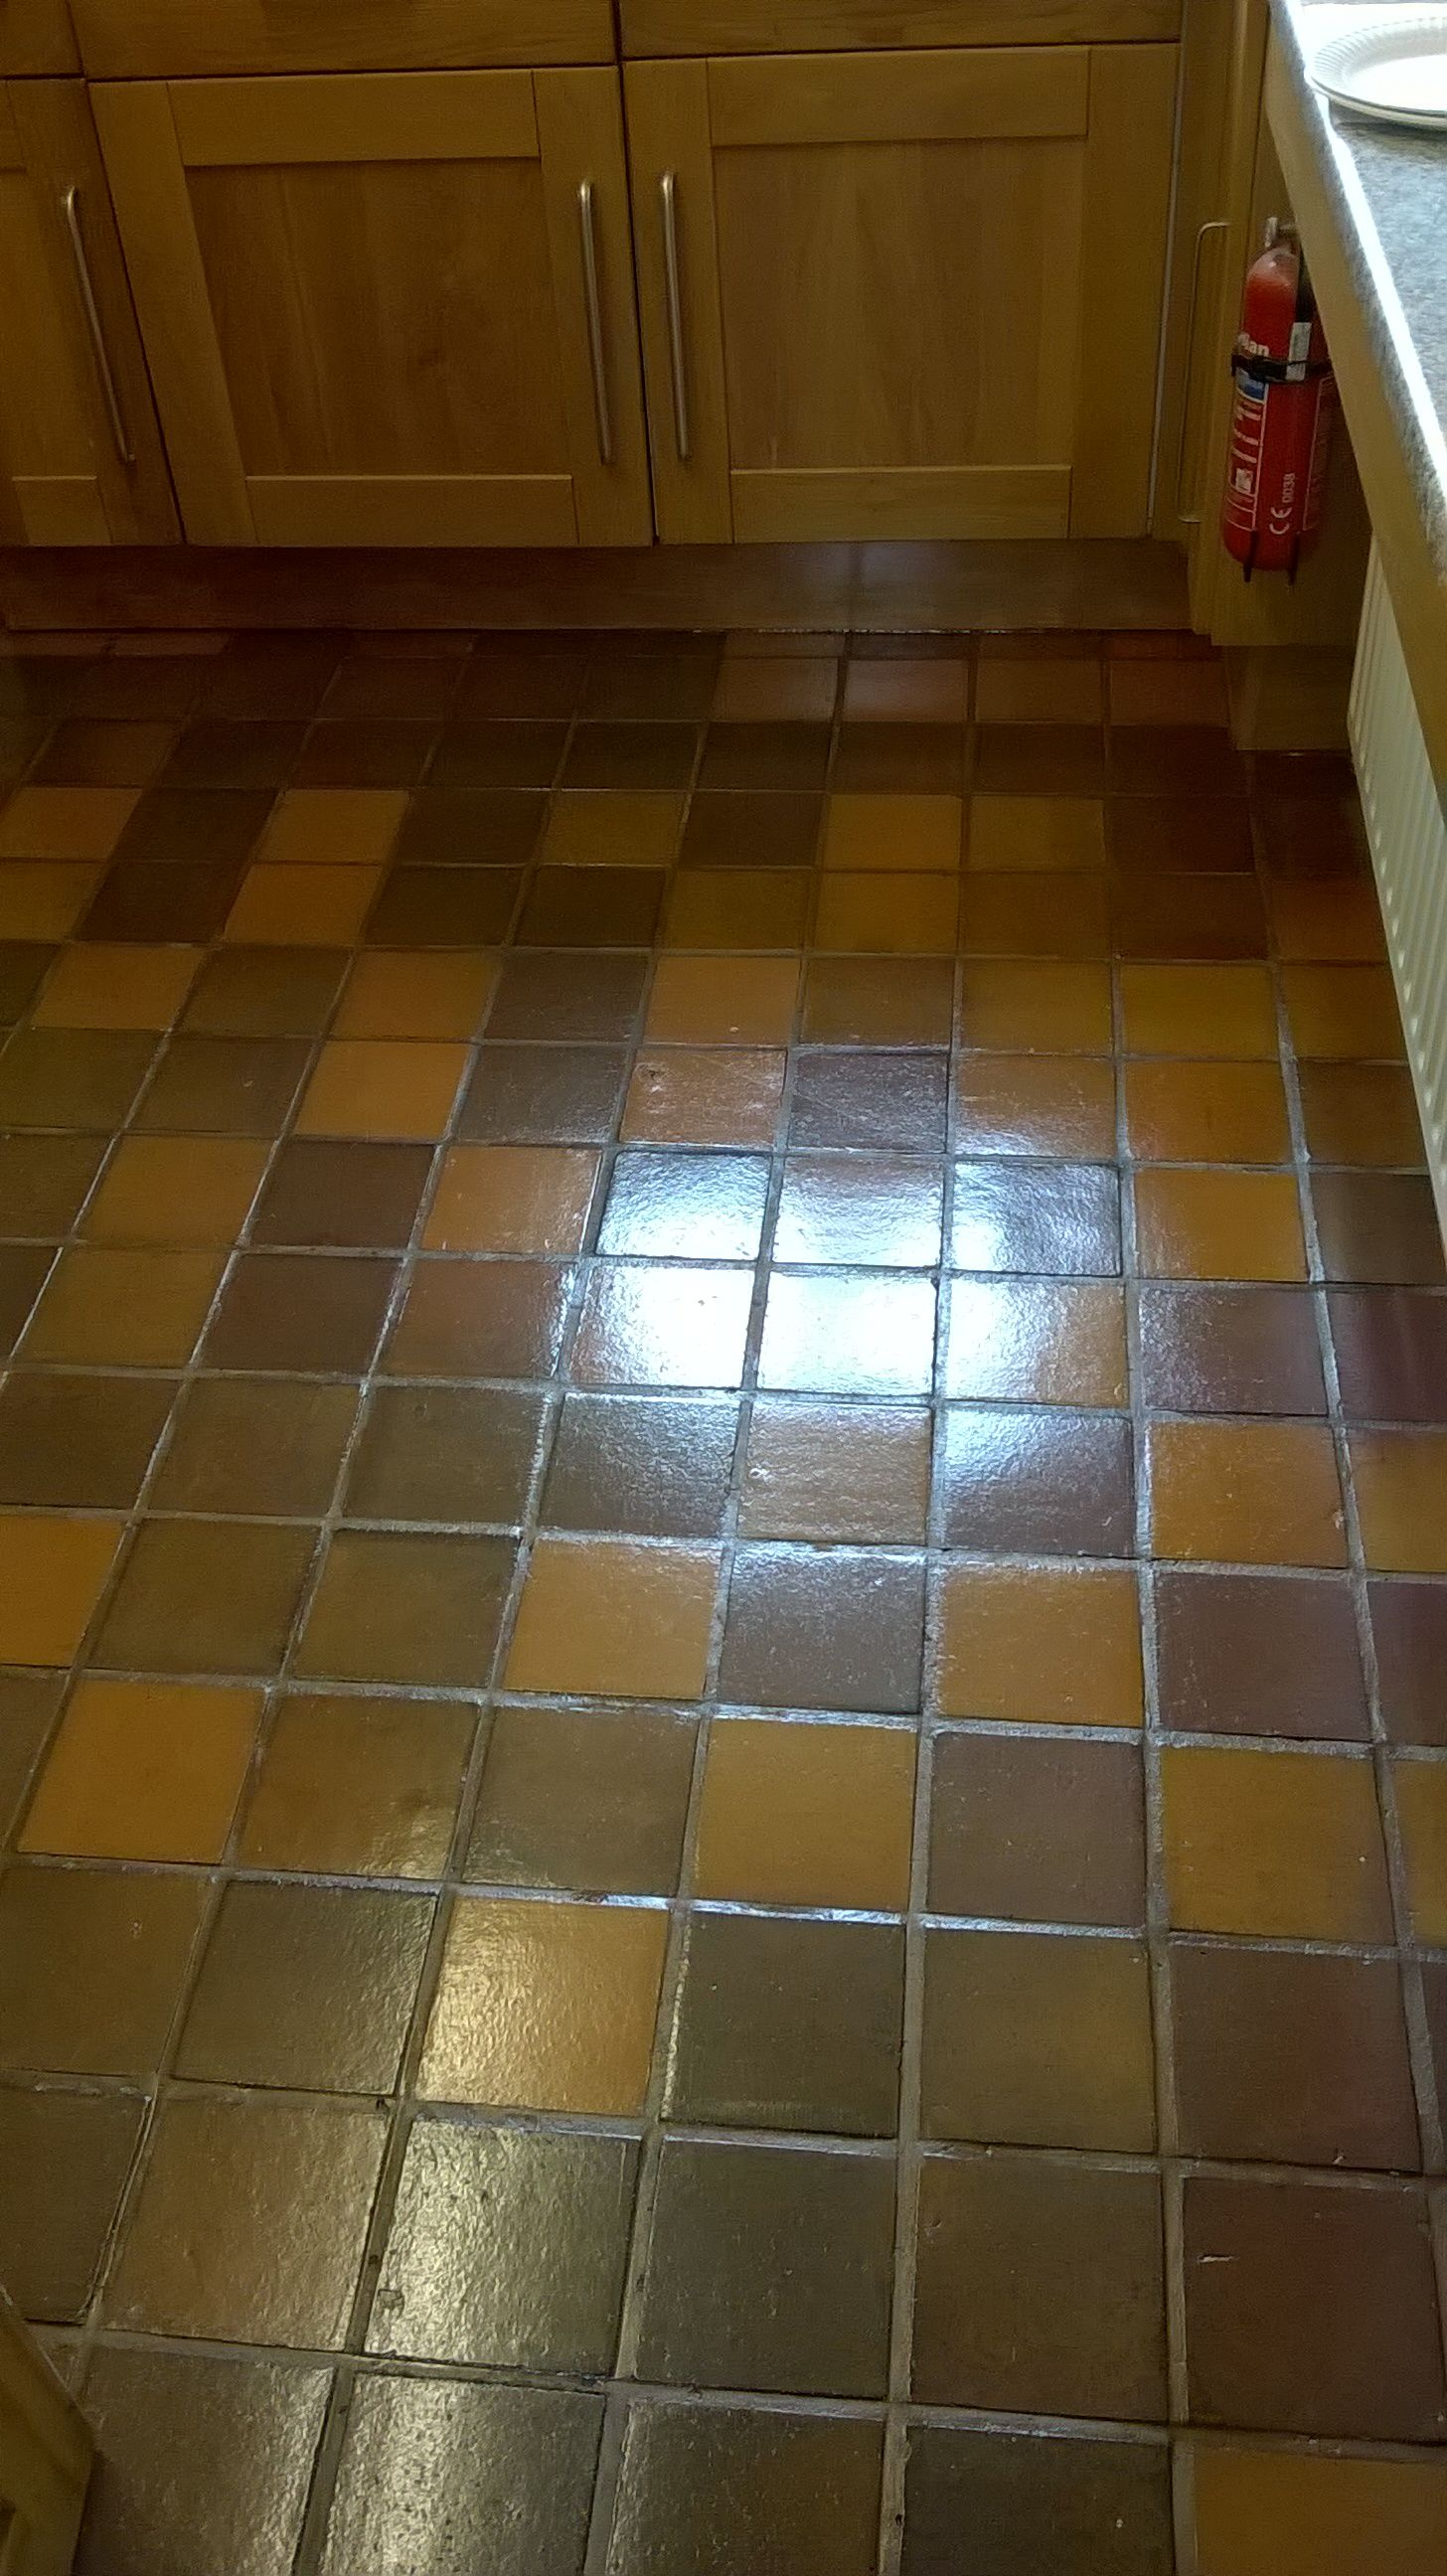 This Quarry Tiled Kitchen Floor Was In Very Good Condition